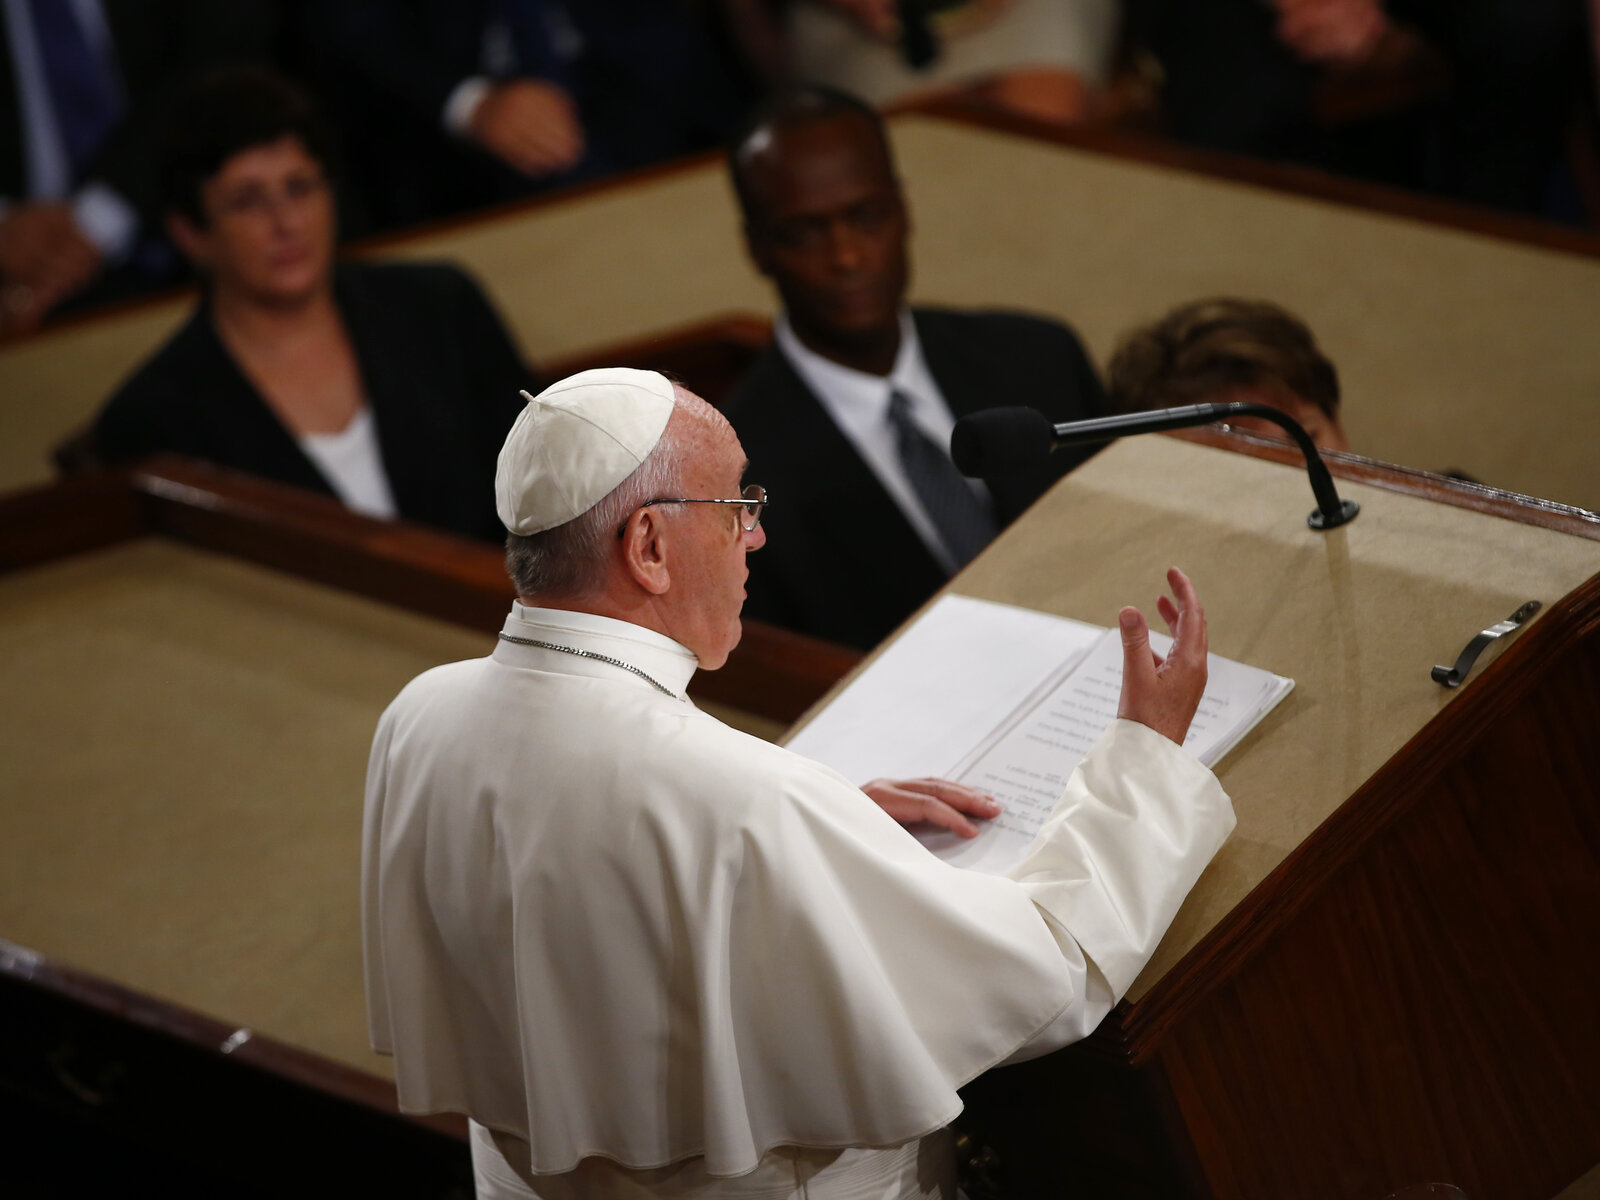 Pope Francis also strongly advocated for abolishing the death penalty, and called on Congress to act on climate change.